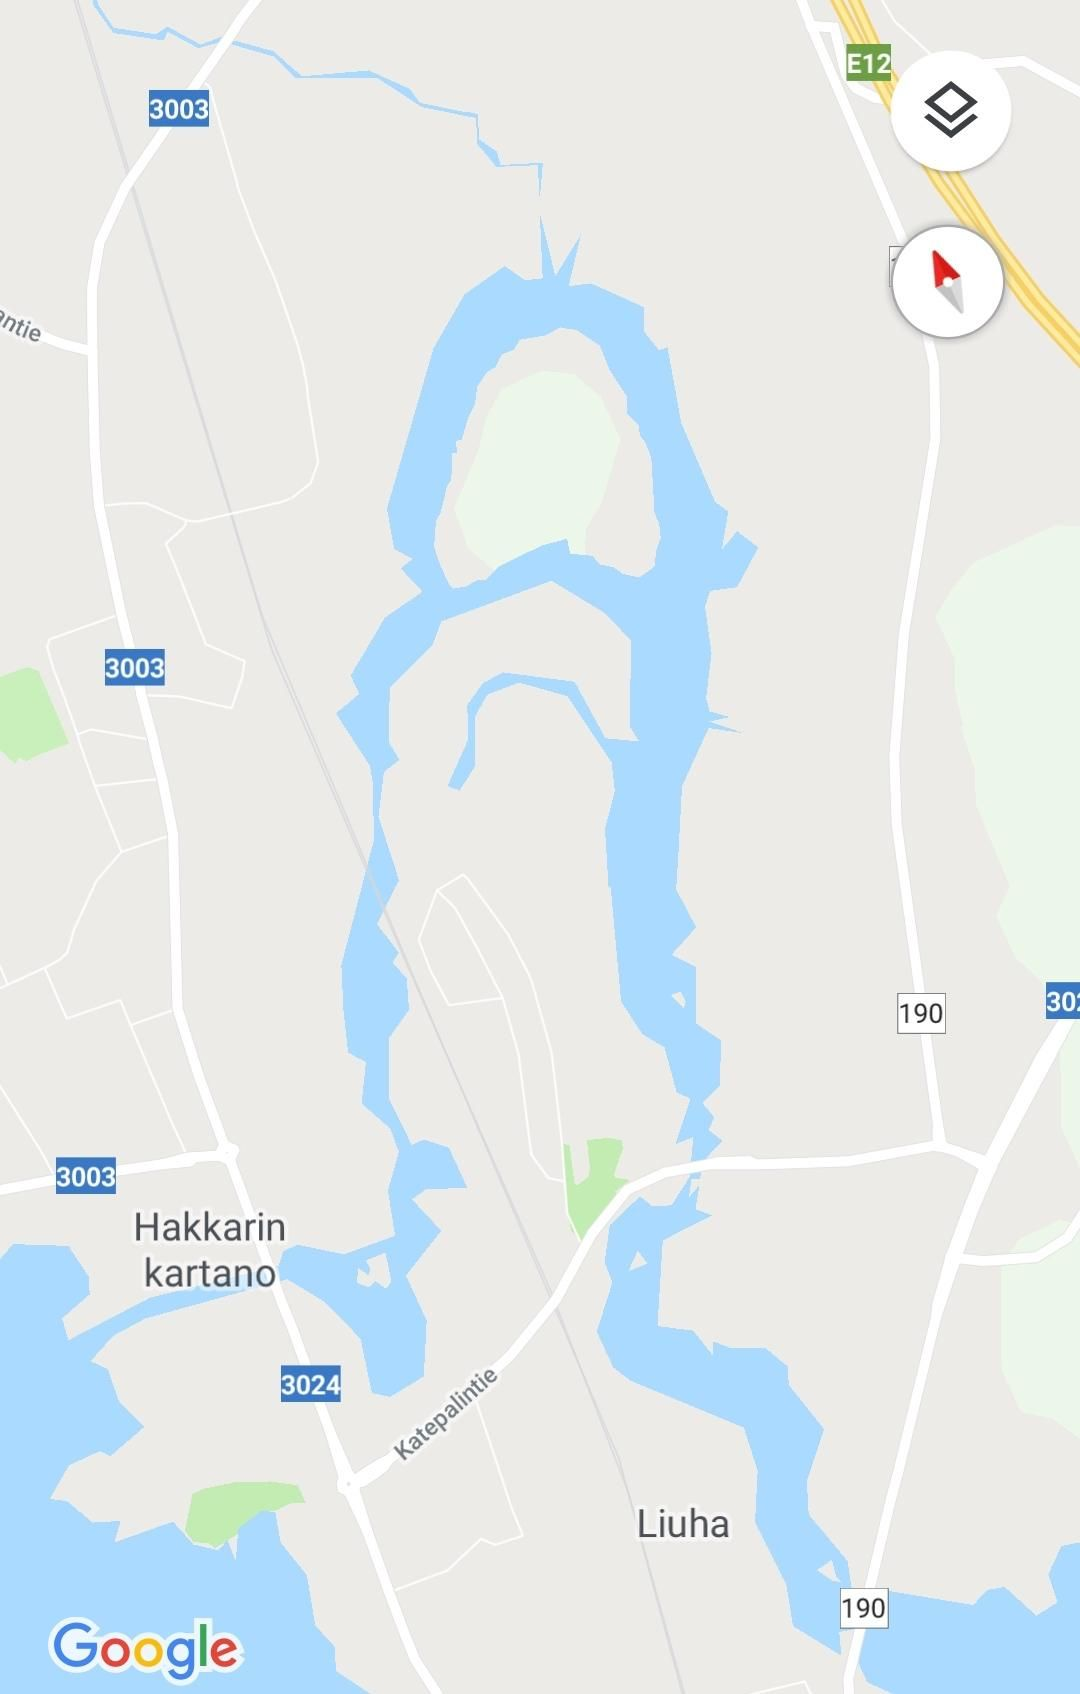 Just a reminder, this river actually exists in Finland.